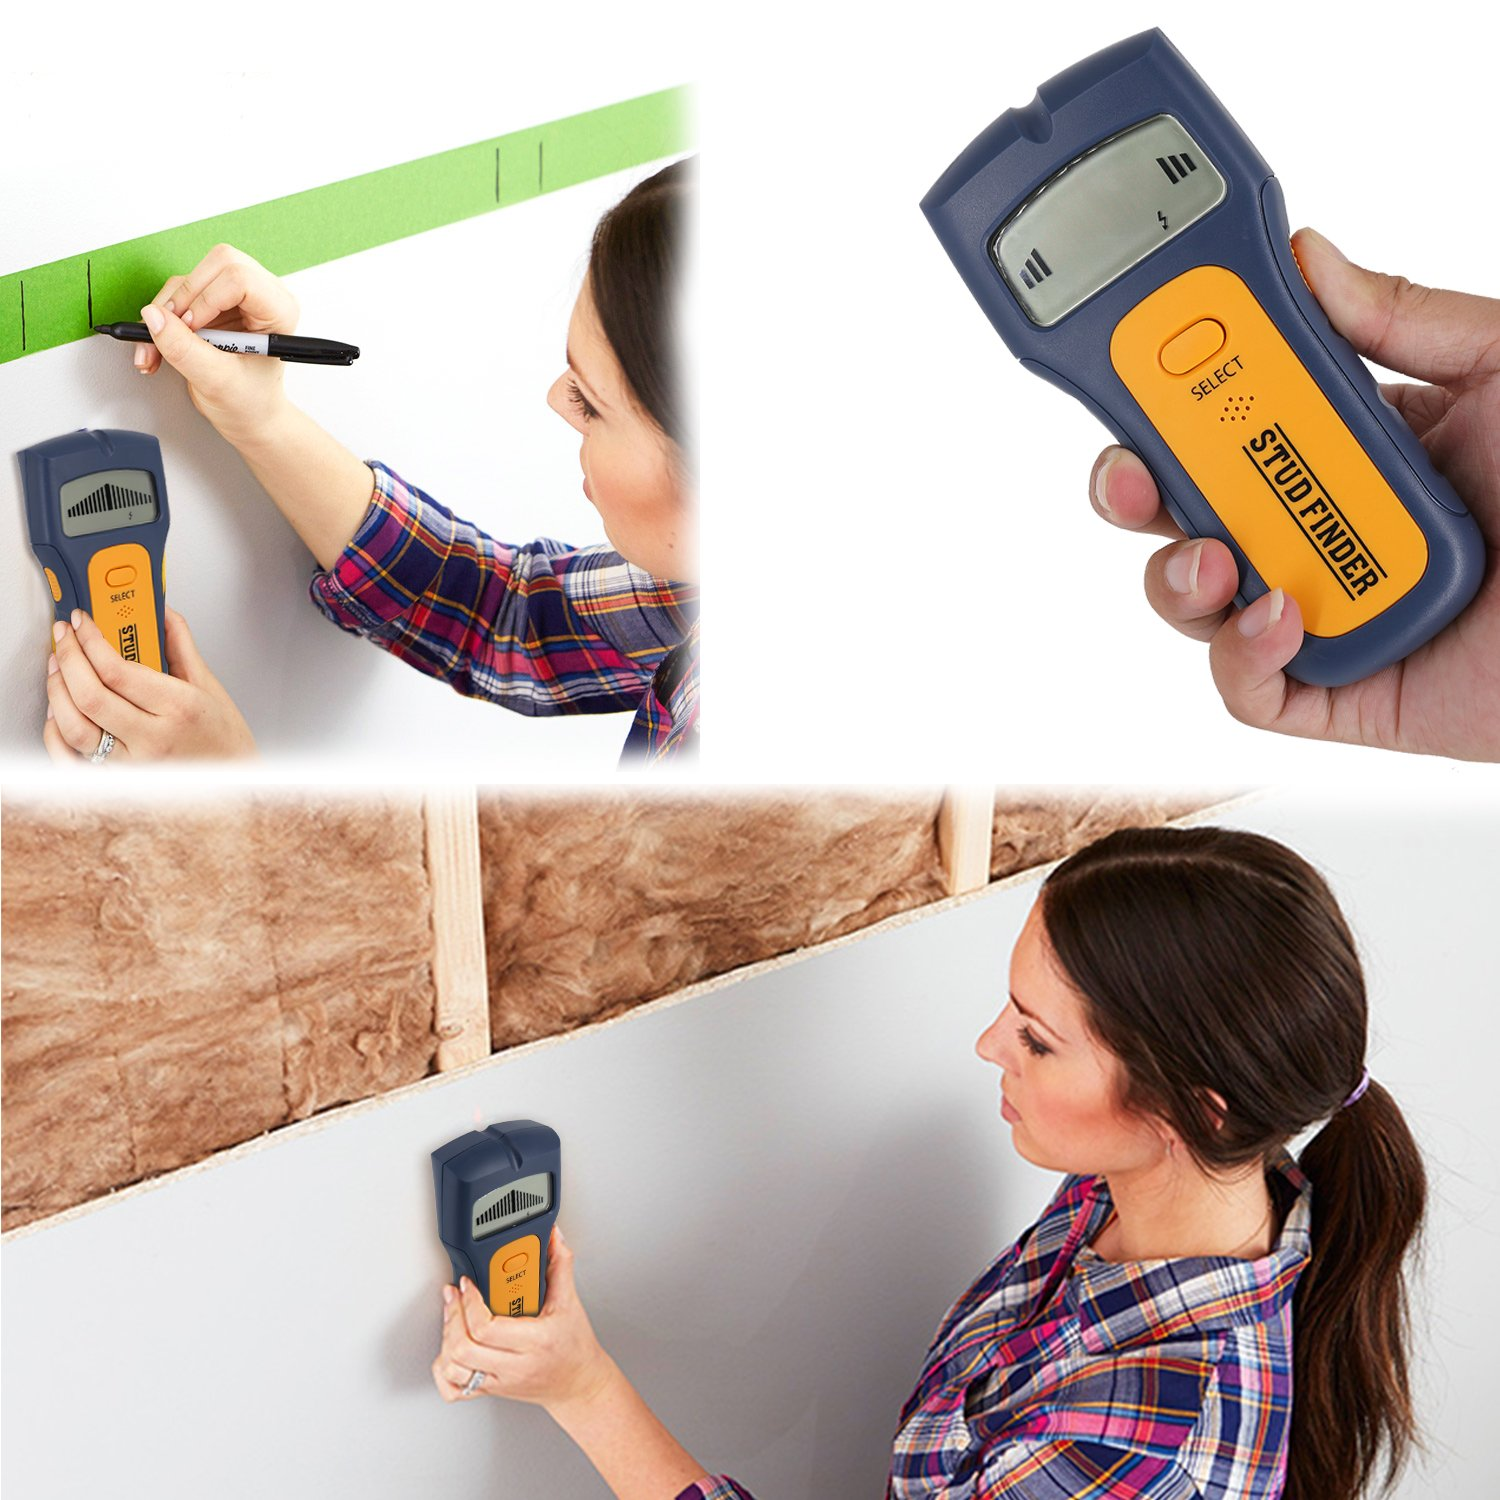 Stud Finder, Multifunction Edge-Finding wall Stud Finder & Sensor for Wood Metal/Wall Studs/AC Wire (yellow) (stud finder8) by imoocare (Image #1)